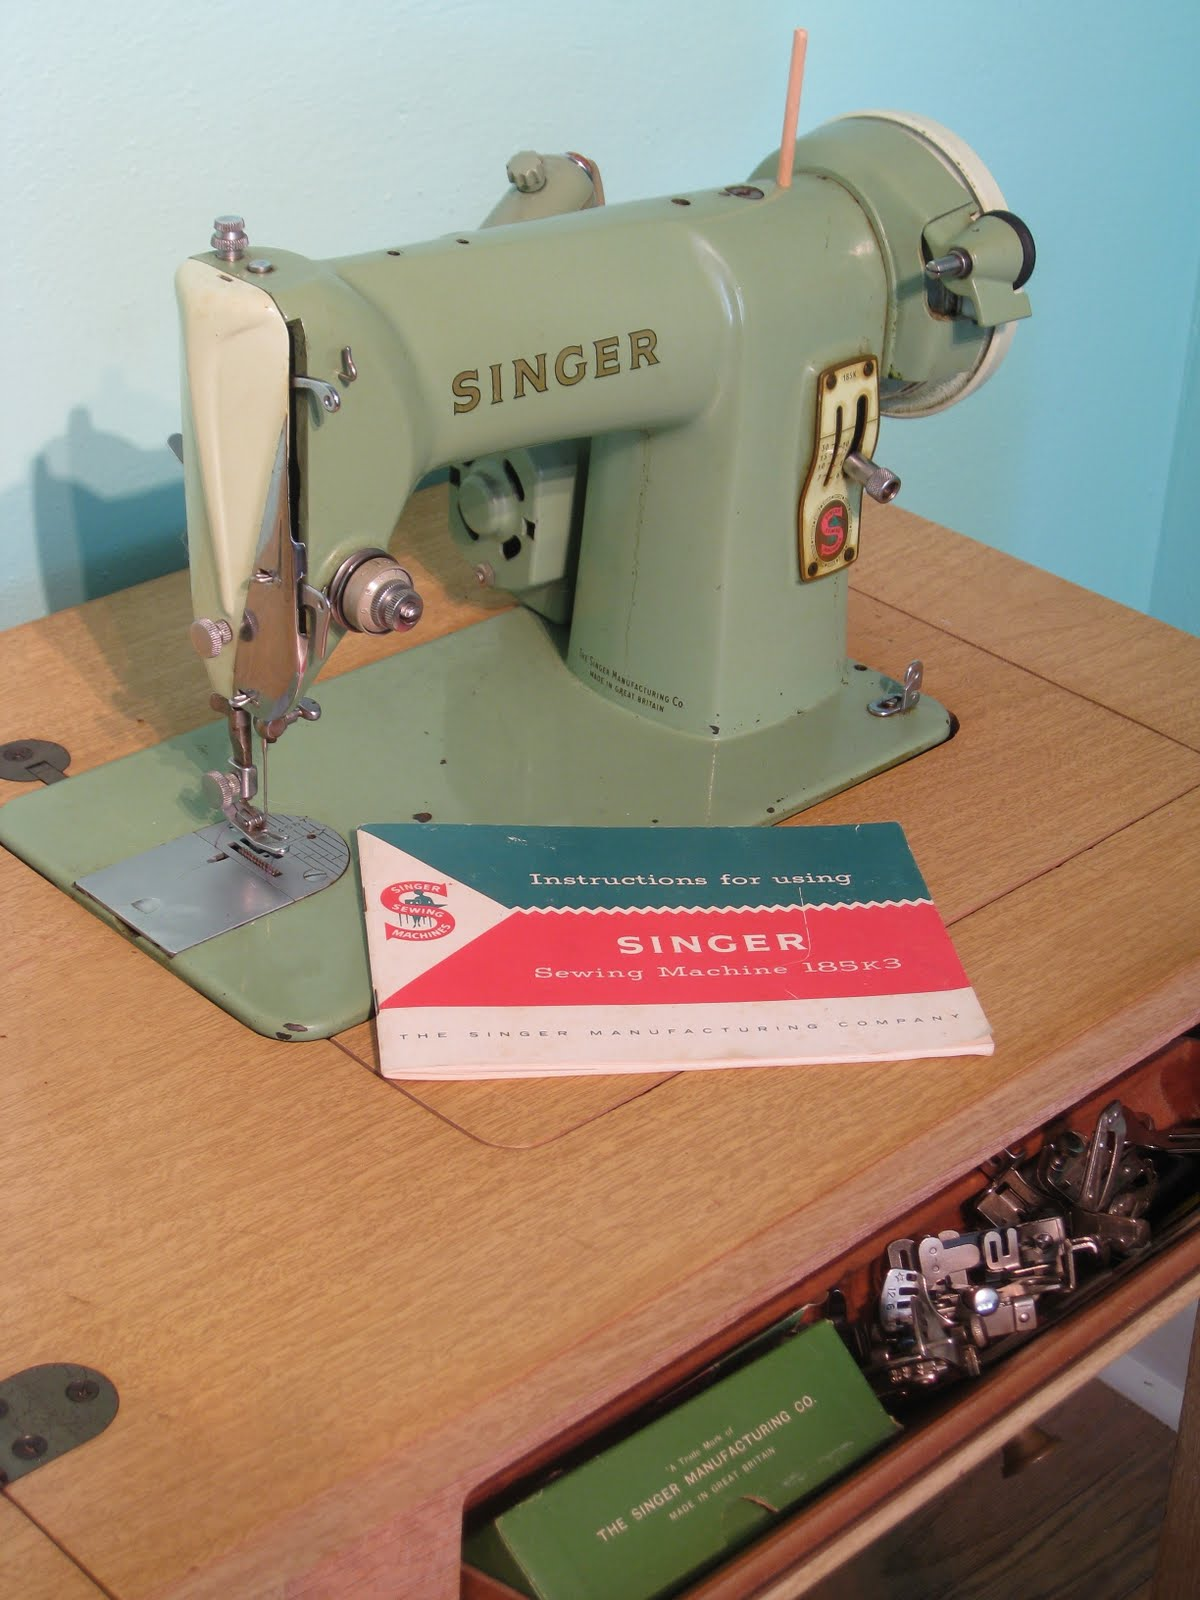 or singer sewing machine which is better